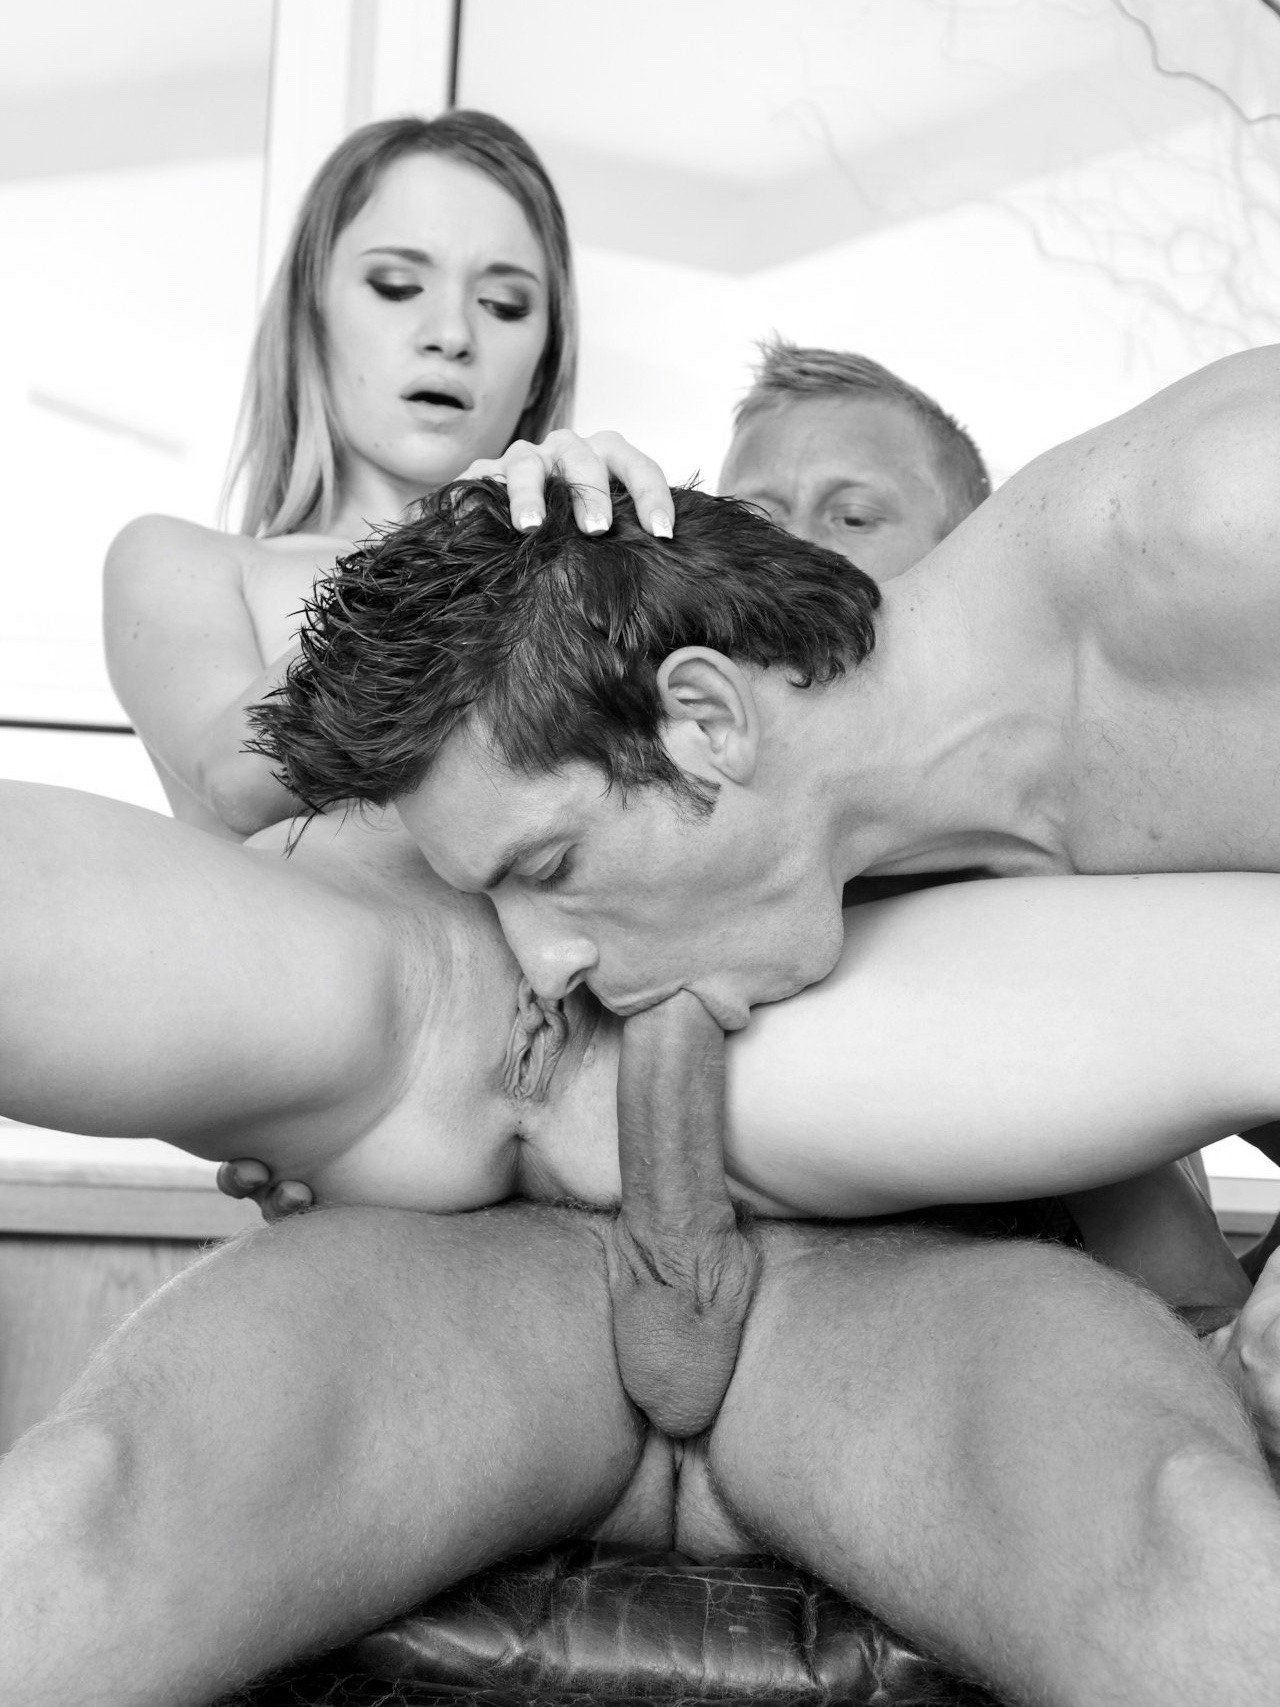 The hot bisexual threesome with horny friends